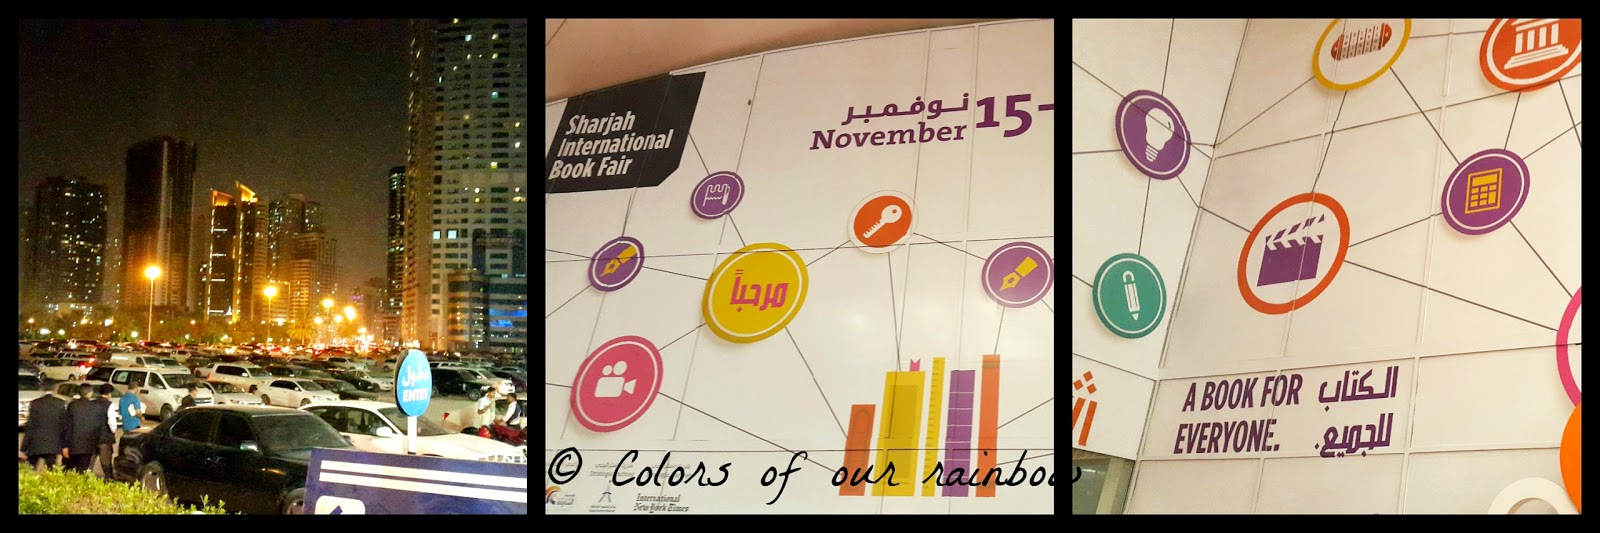 Sharjah book fair 2014